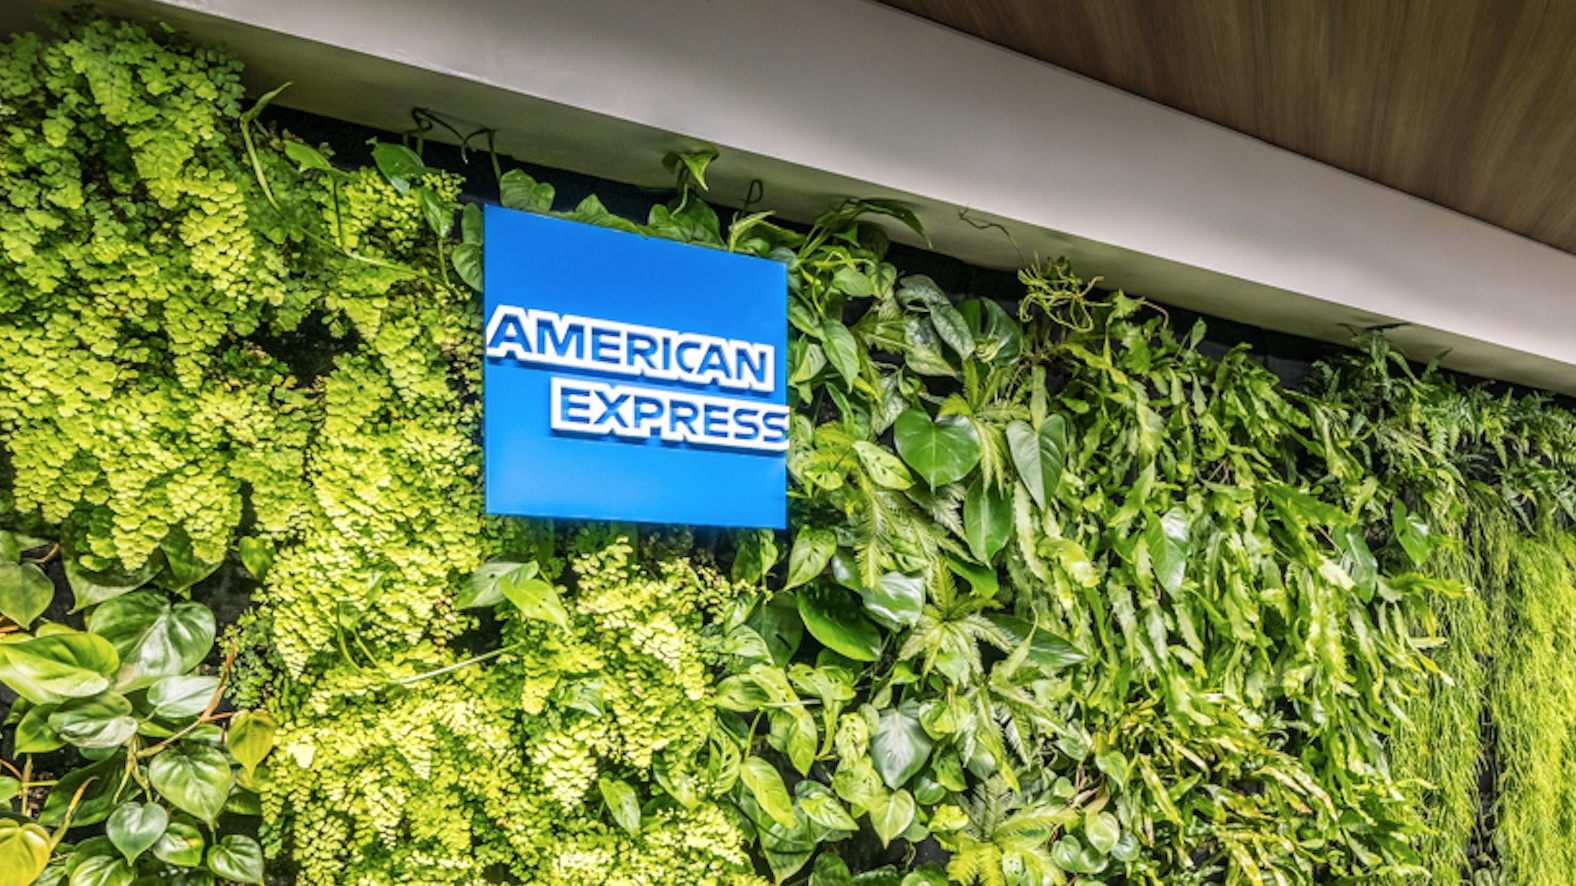 American Express green wall